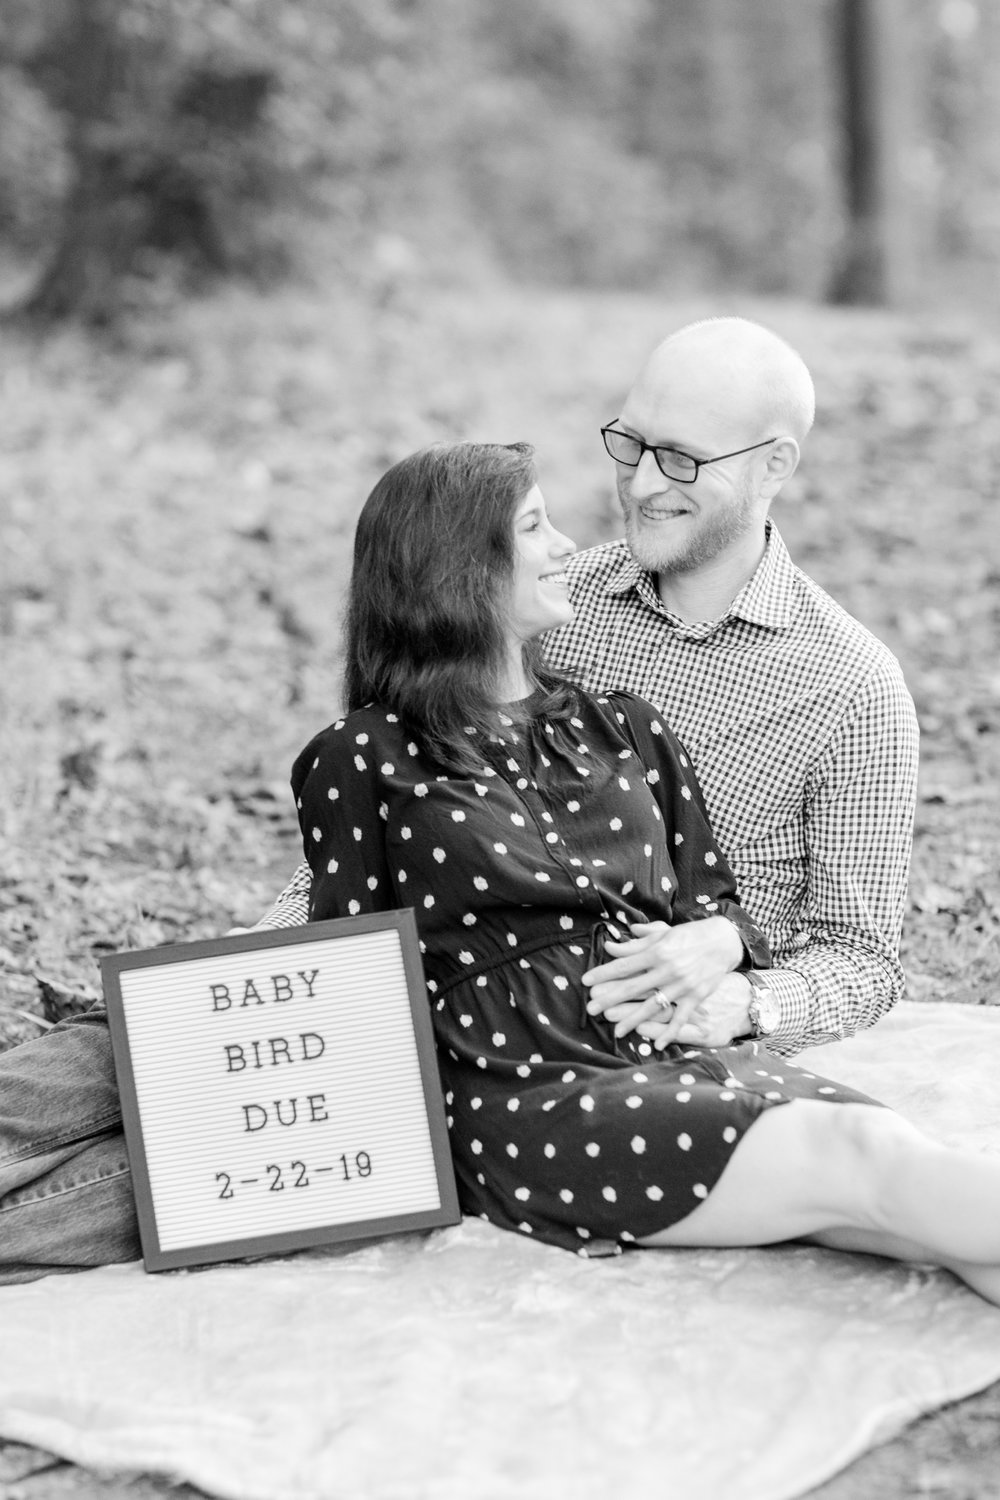 Bird Family 2018-34_Loch-Raven-Reservoir-Anniversary-Pregnancy-Reveal-Photographer-anna-grace-photography-photo.jpg